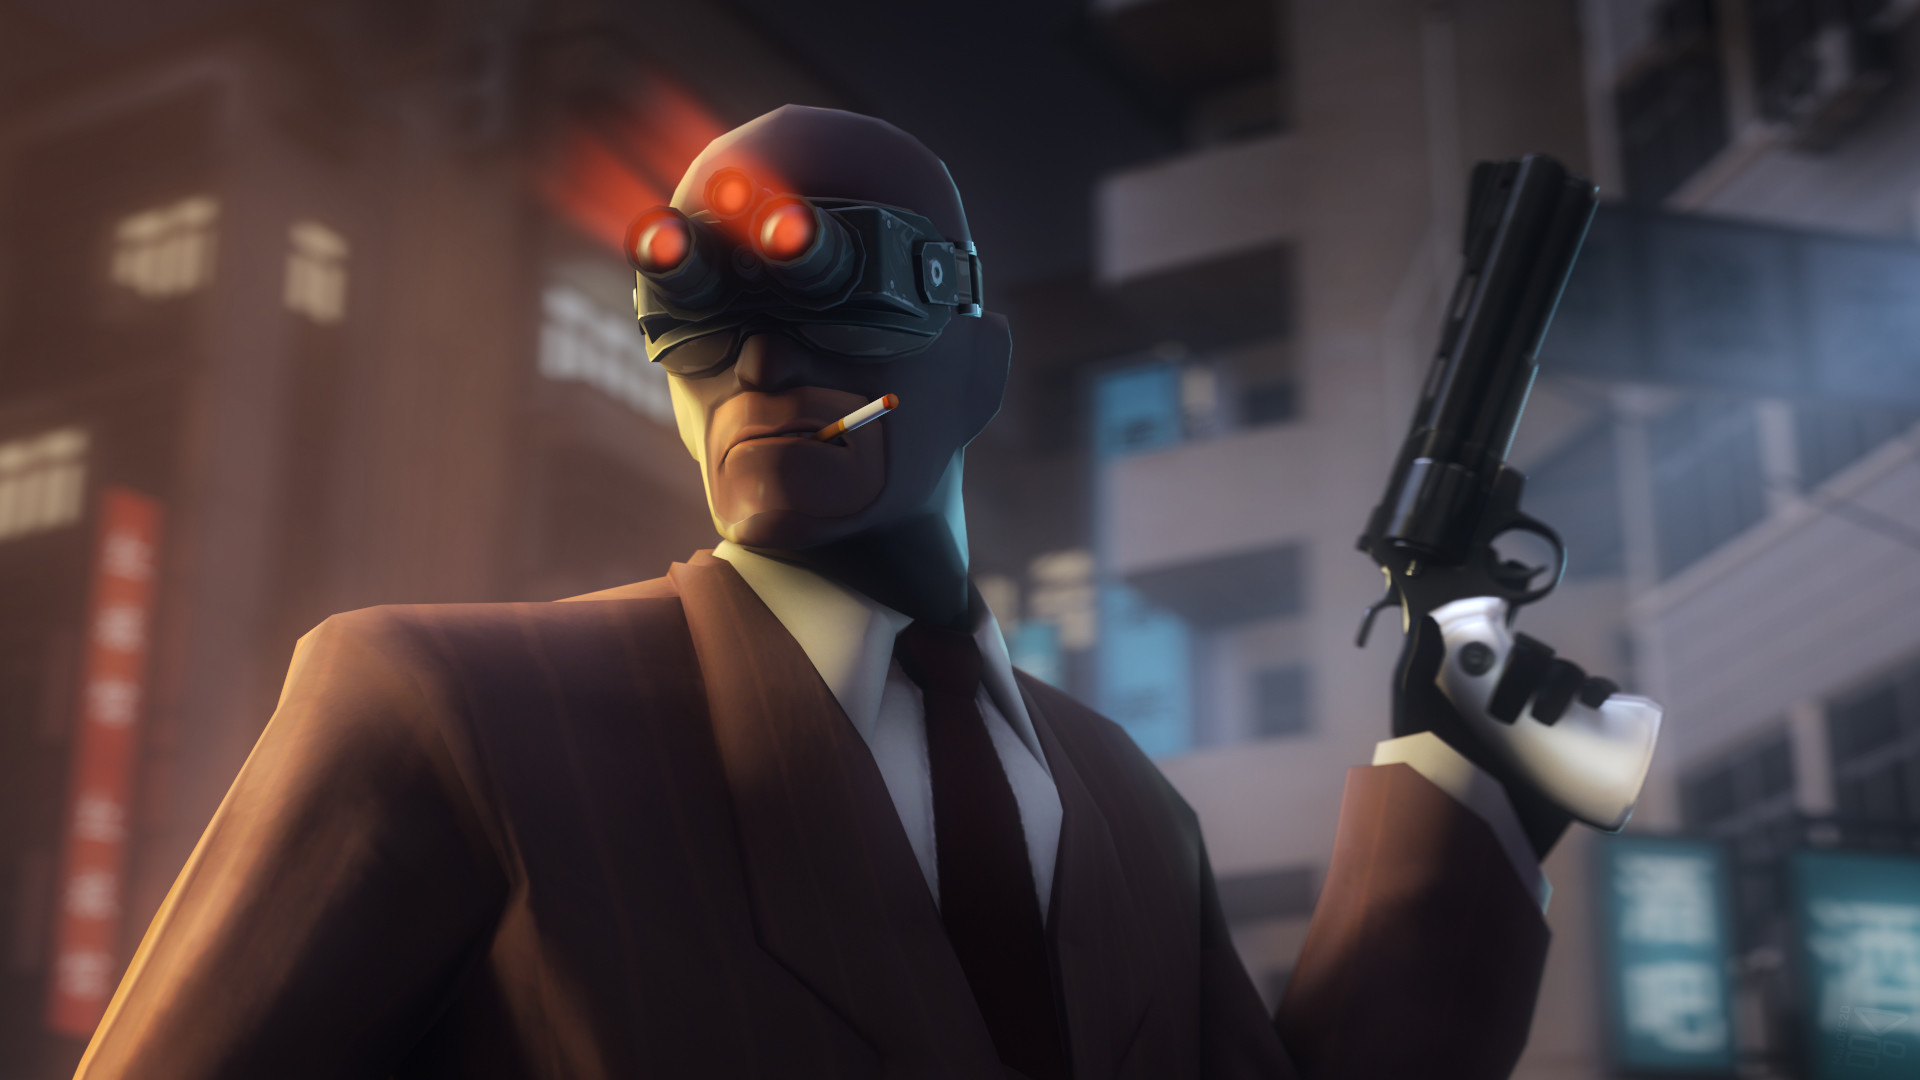 1920x1080 tf2 spy wallpaper #600399